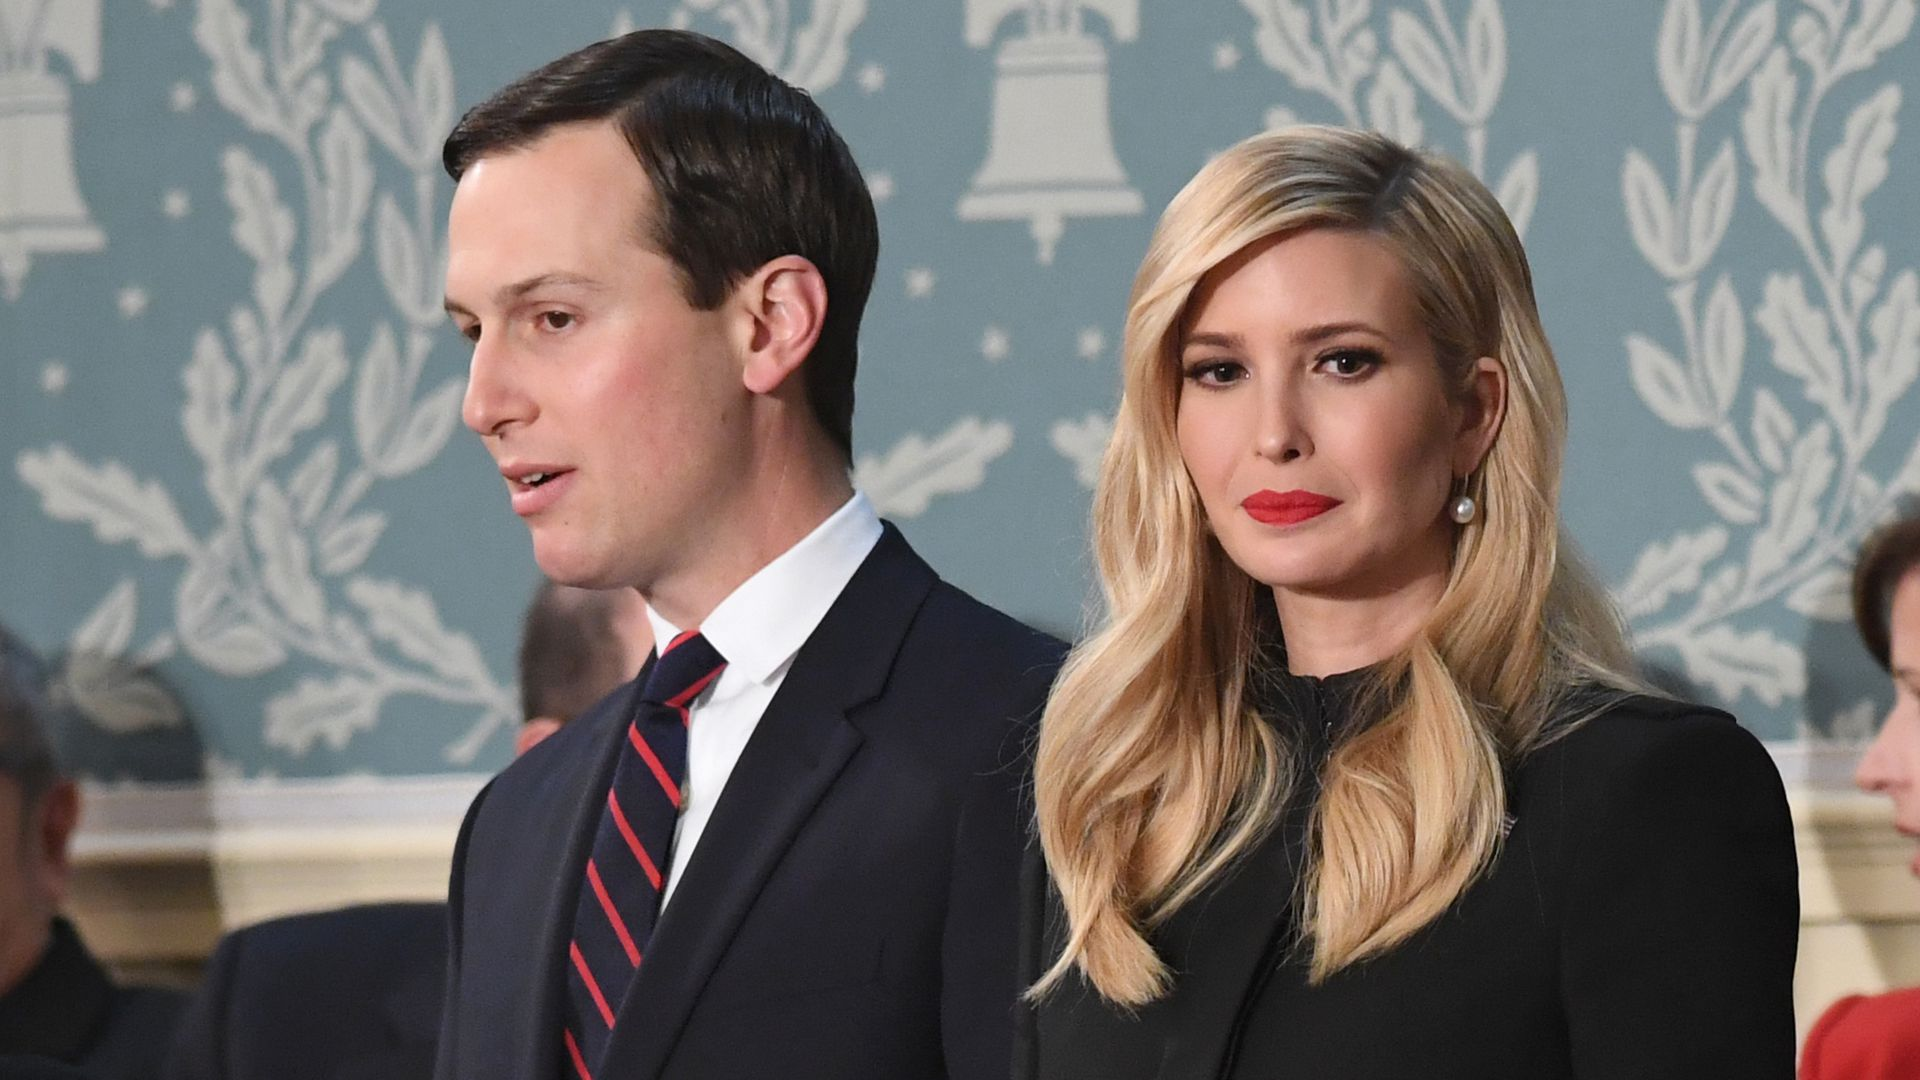 Scoop: White House leak to House Dems on Jared and Ivanka's